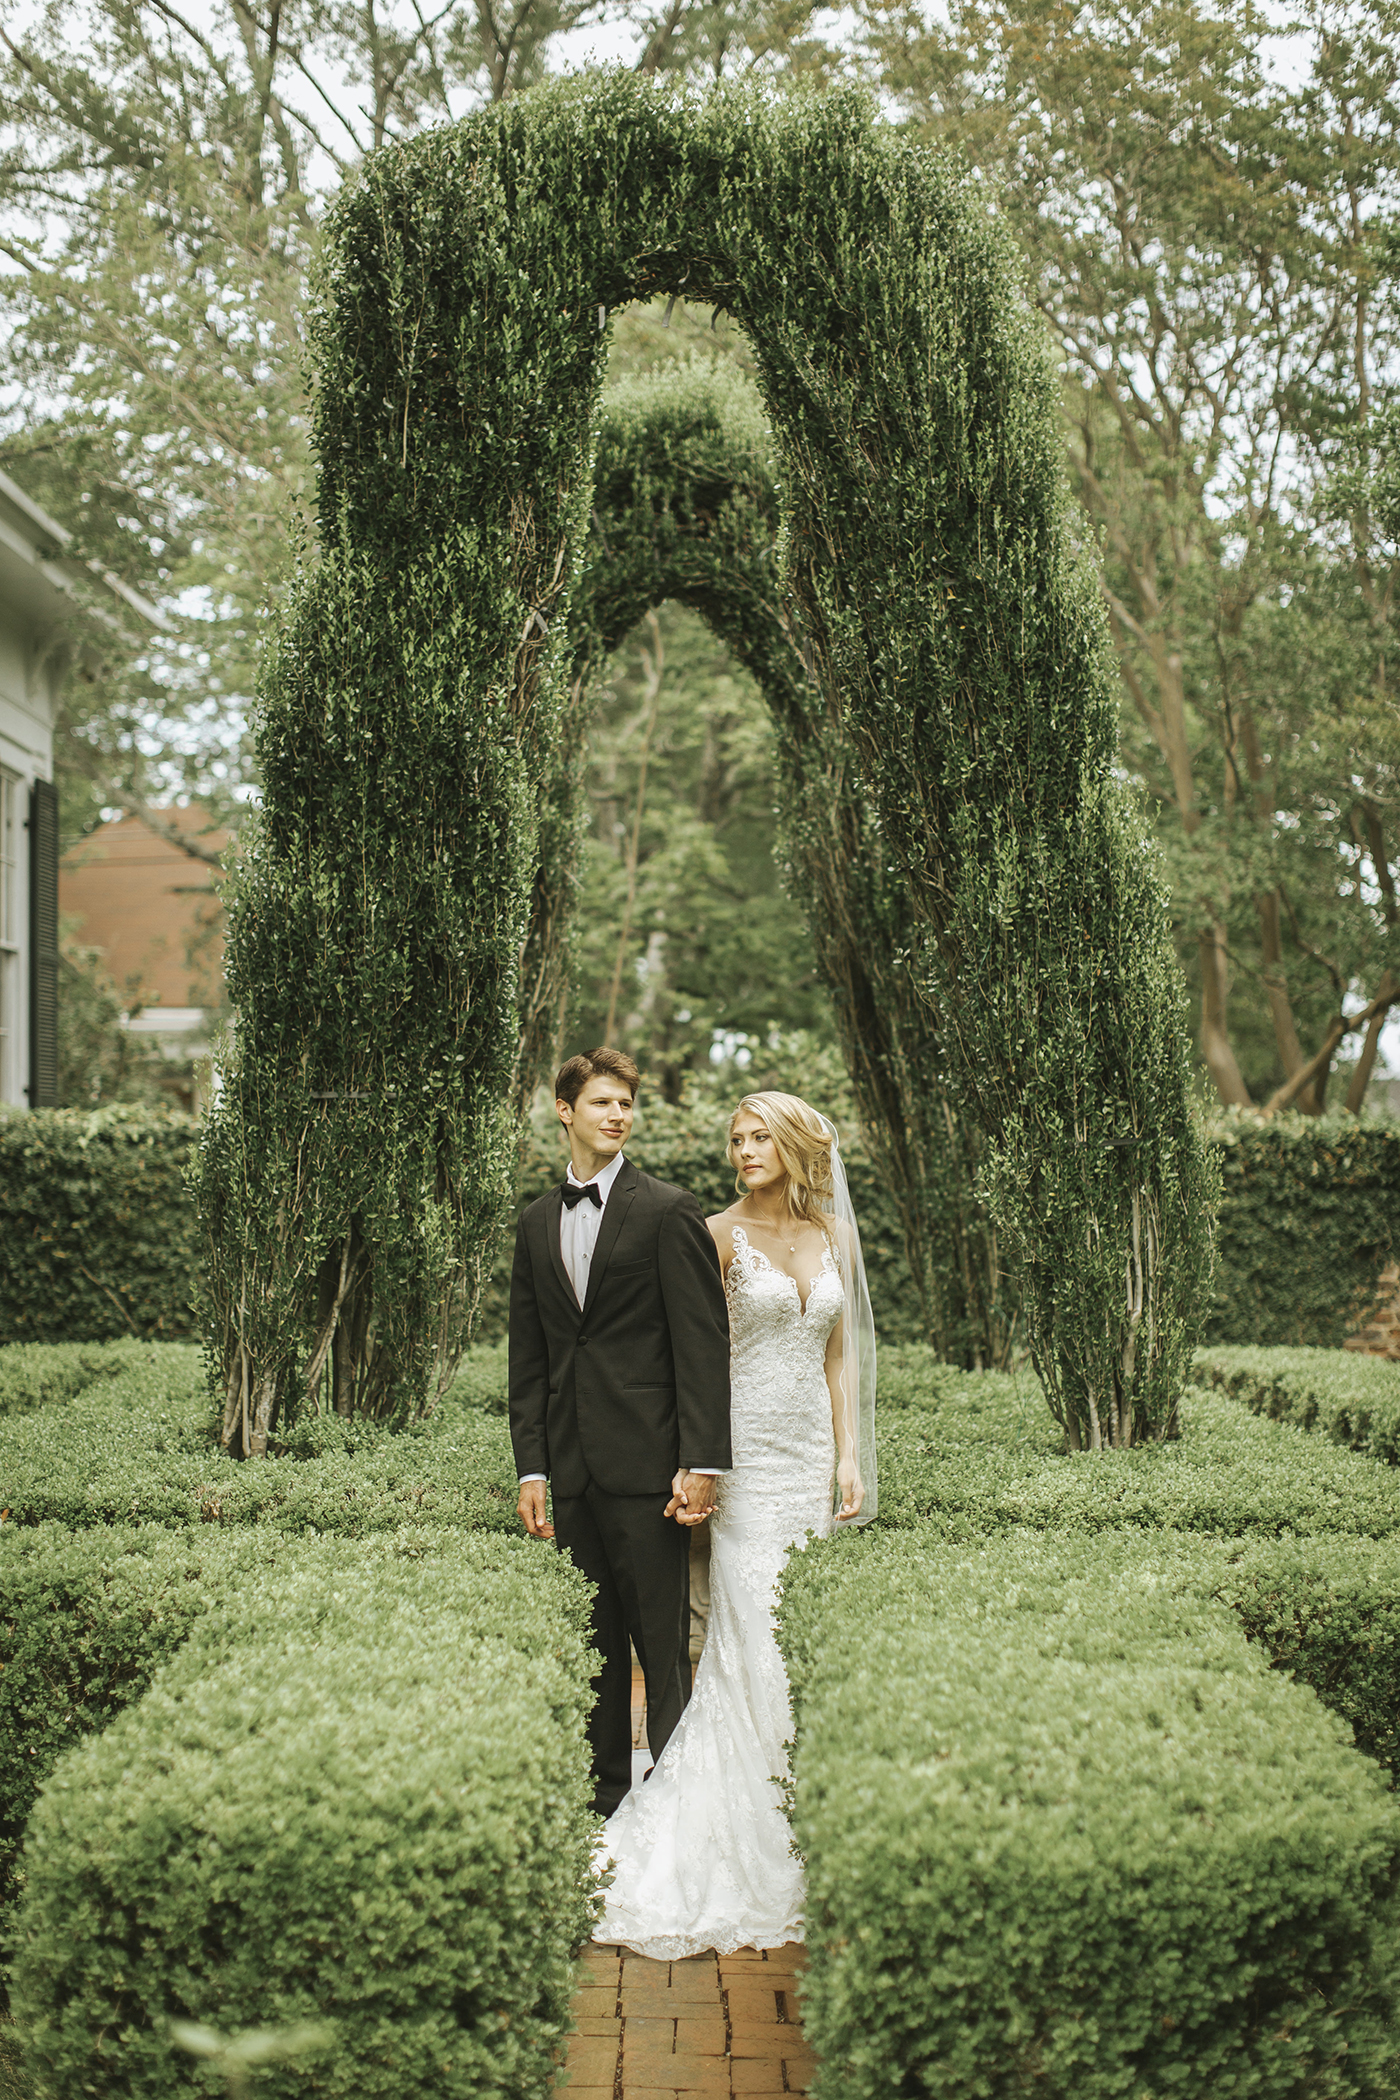 Mississippi_Garden_wedding_about_blake_Mccollum_photogrpahy